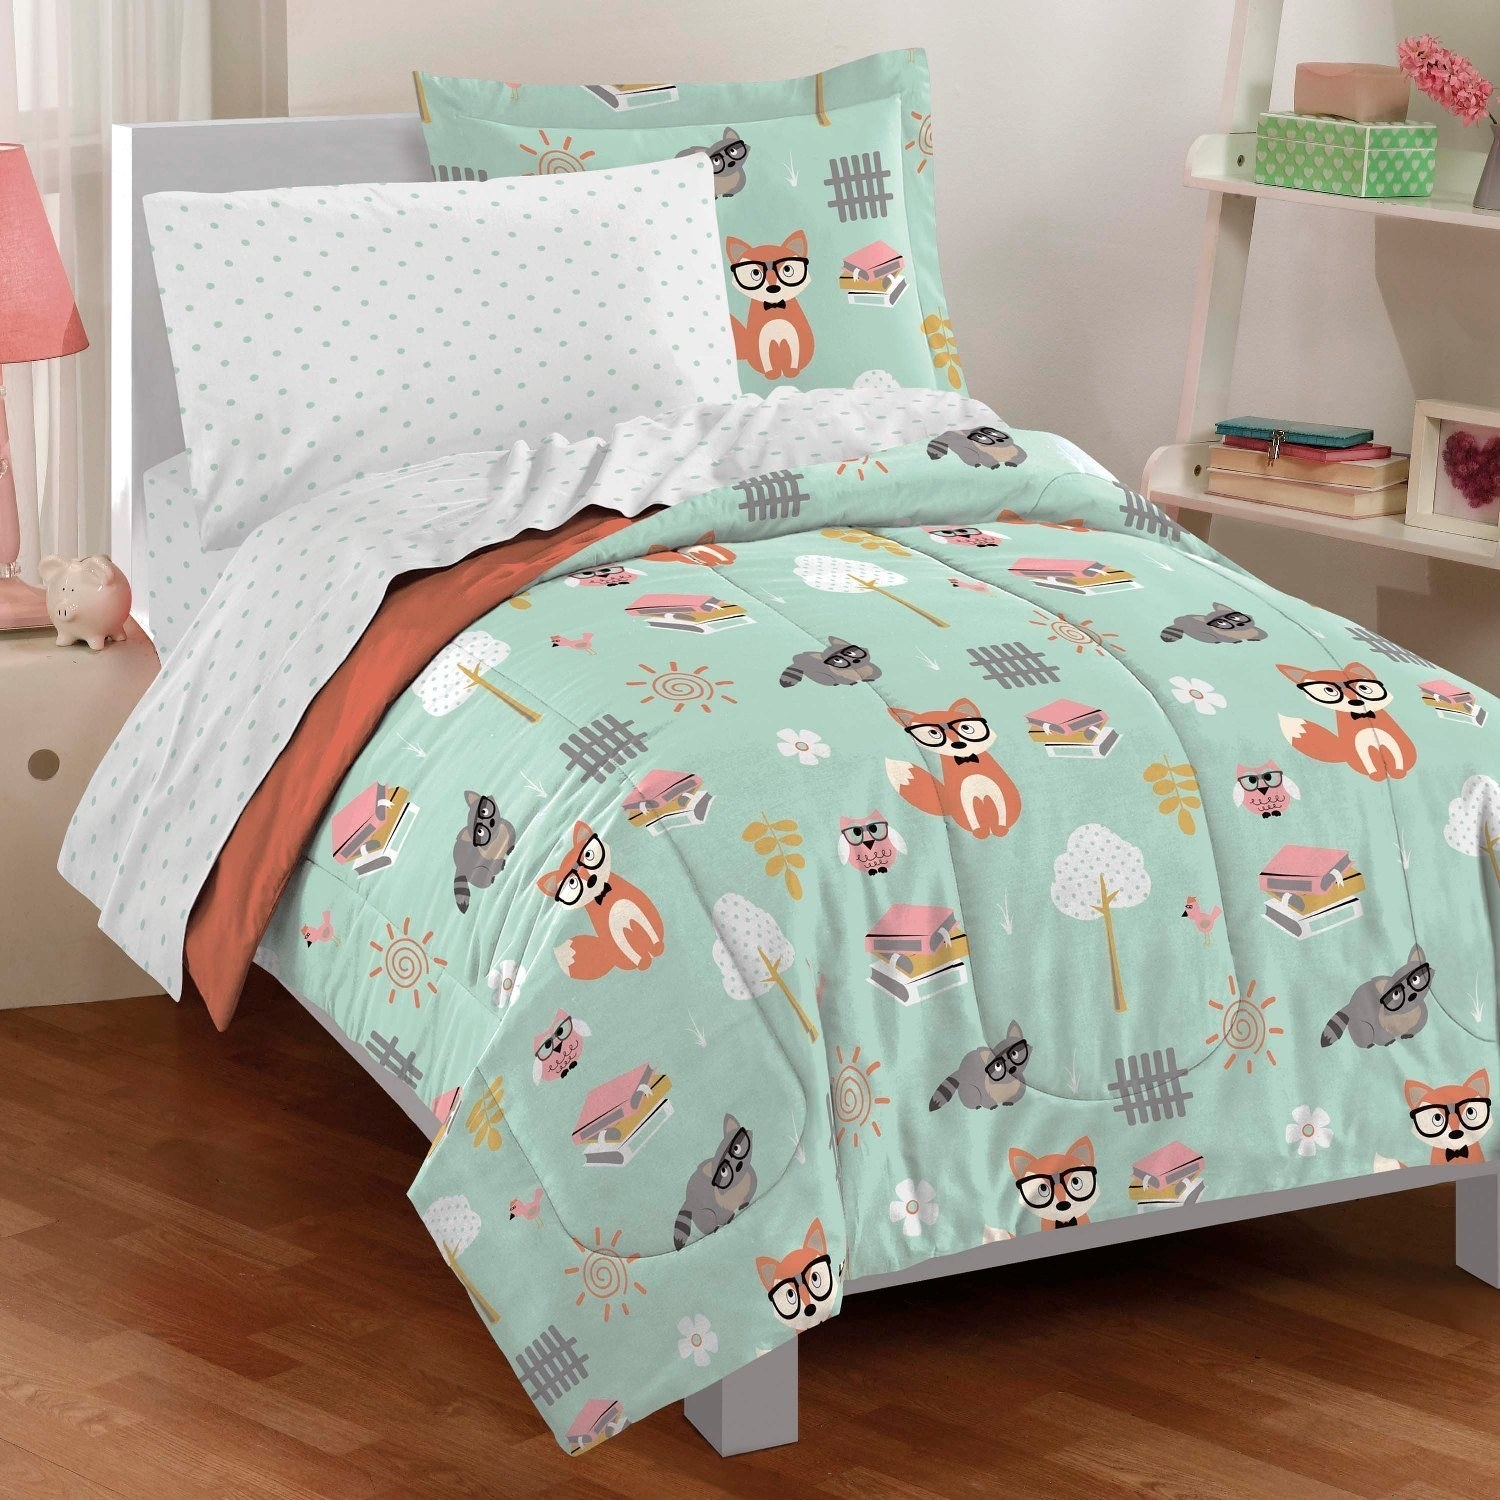 An Adorable Comforter Set Featuring Bespectacled Foxes, Raccoons, And Owls.